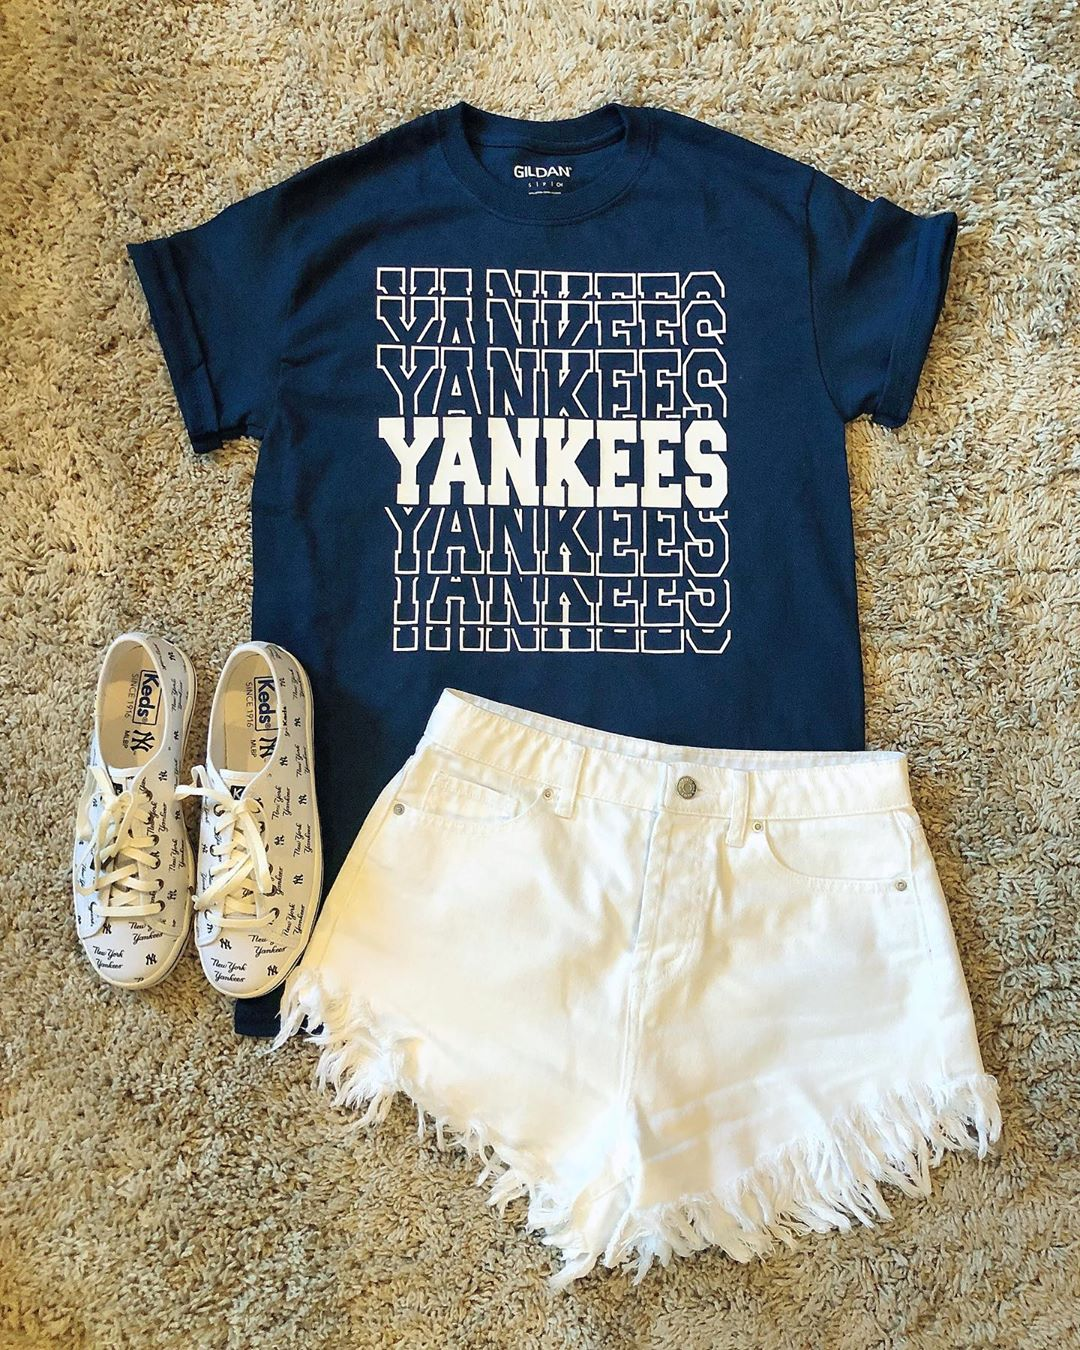 In honor of opening day I just had to make a Yankee shirt!   #openingday #baseba…